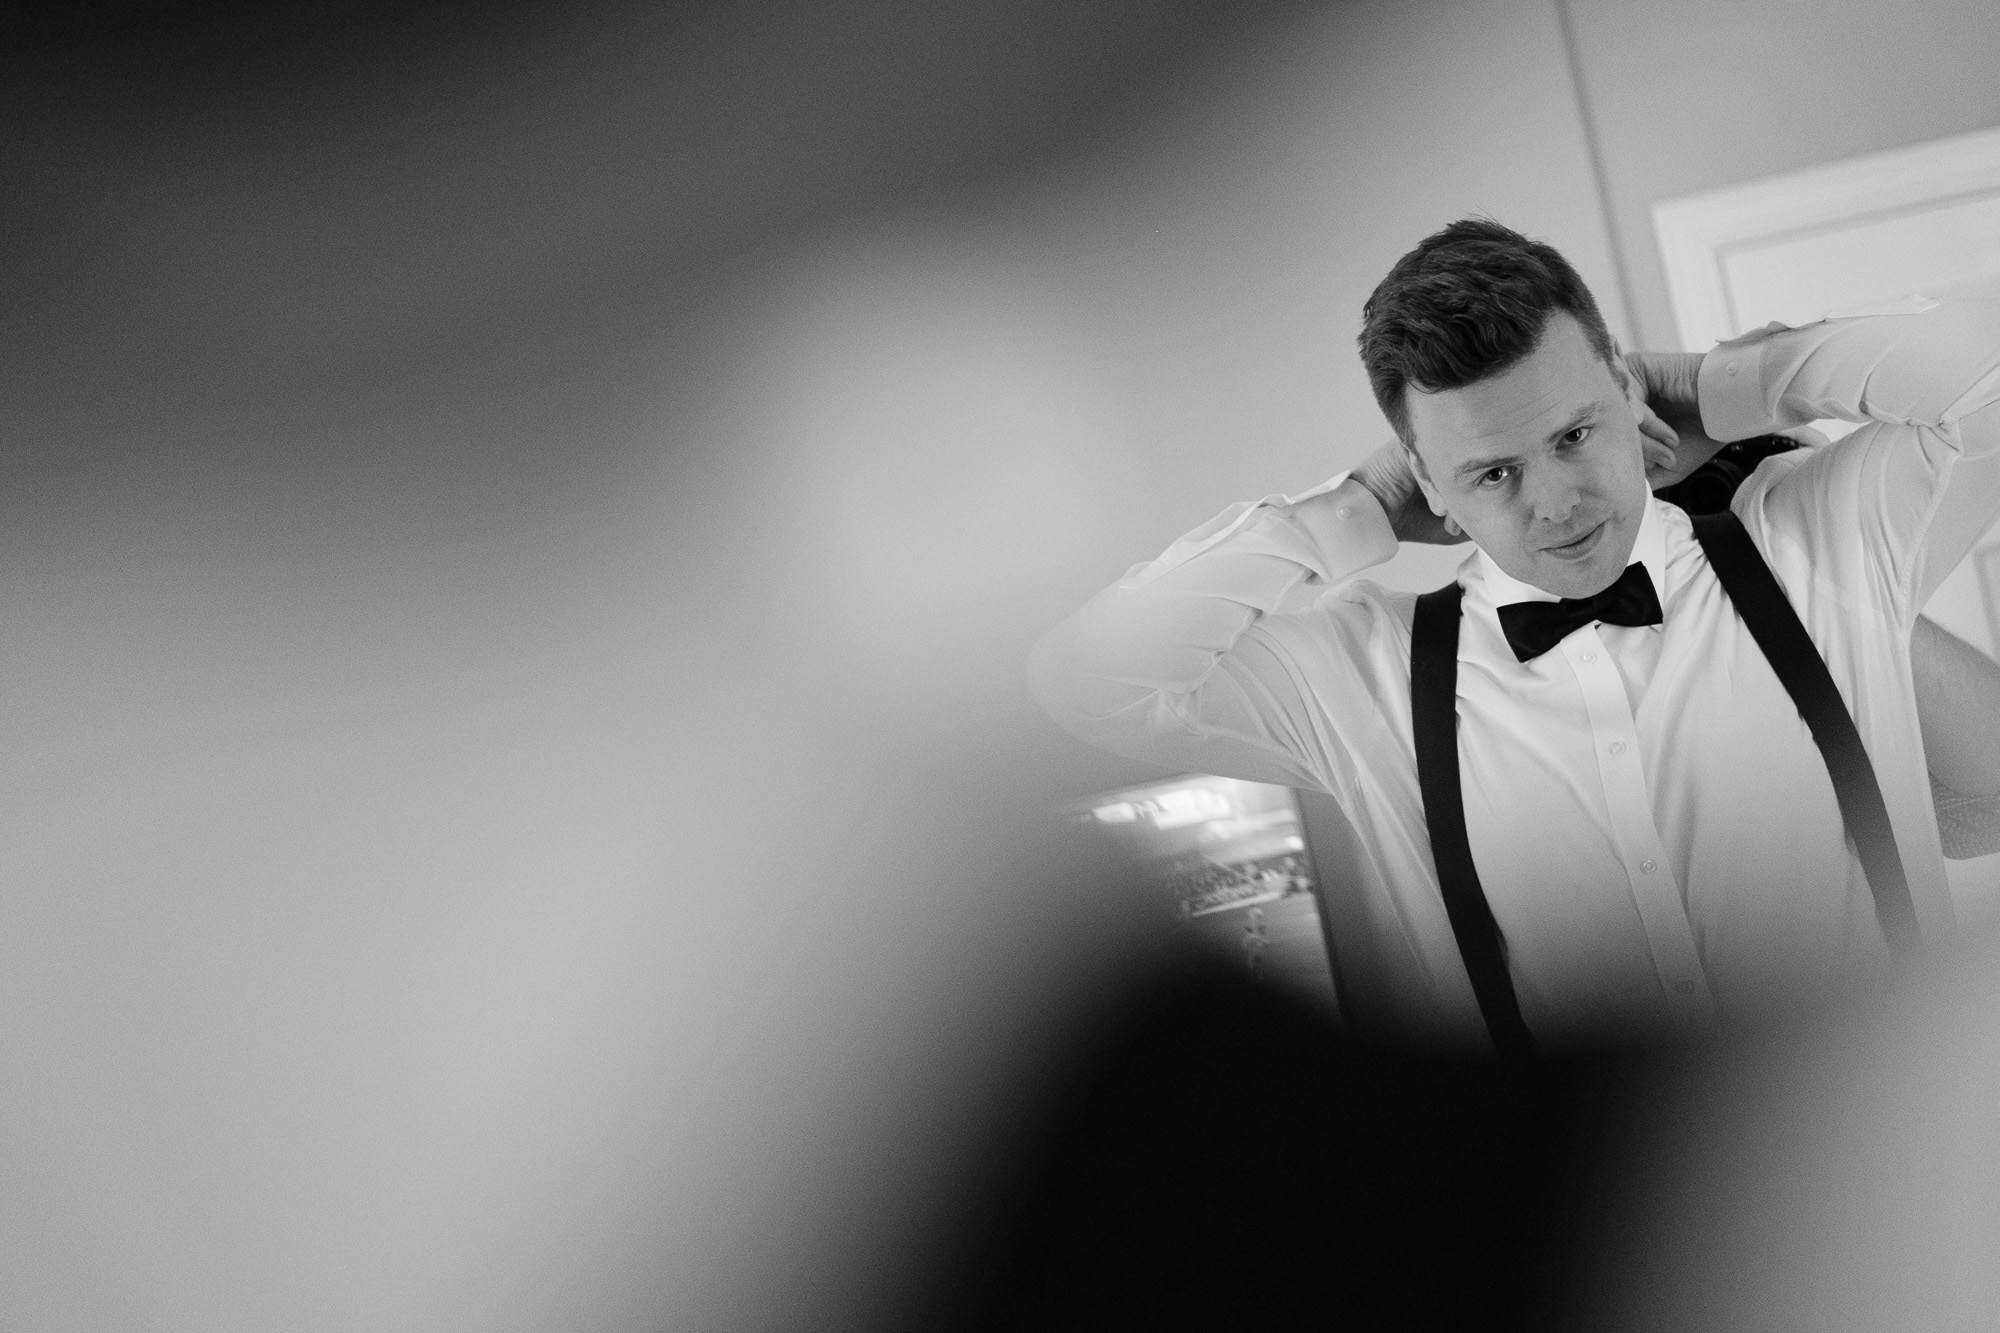 The groom adjusts his bowtie while getting ready for his wedding at the King Edward Hotel in Toronto.